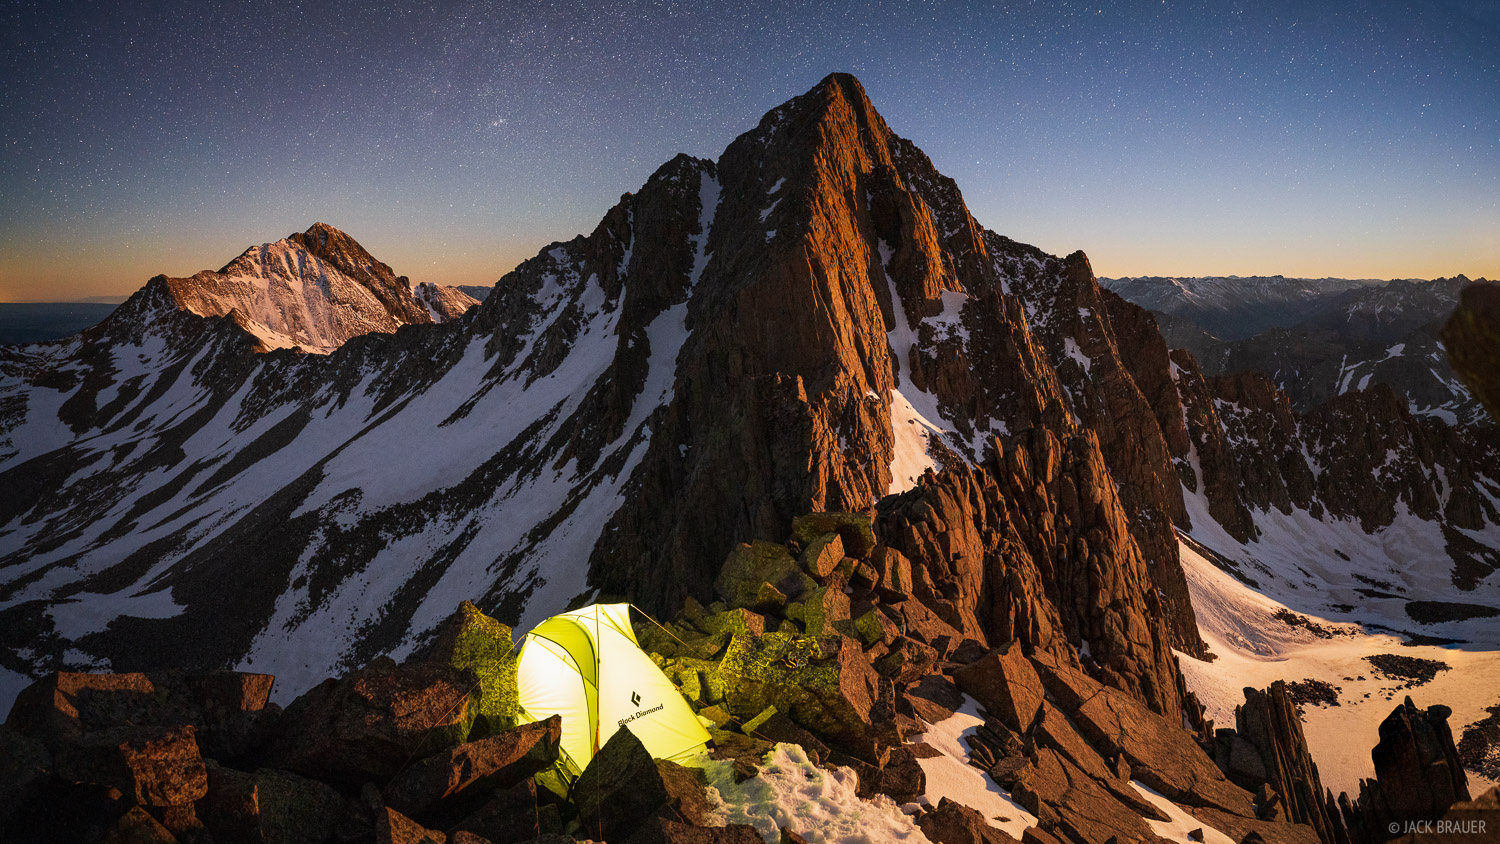 Moonrise light on Gladstone Peak, as seen from a high camp on a 13,400 foot ridge of Mount Wilson.